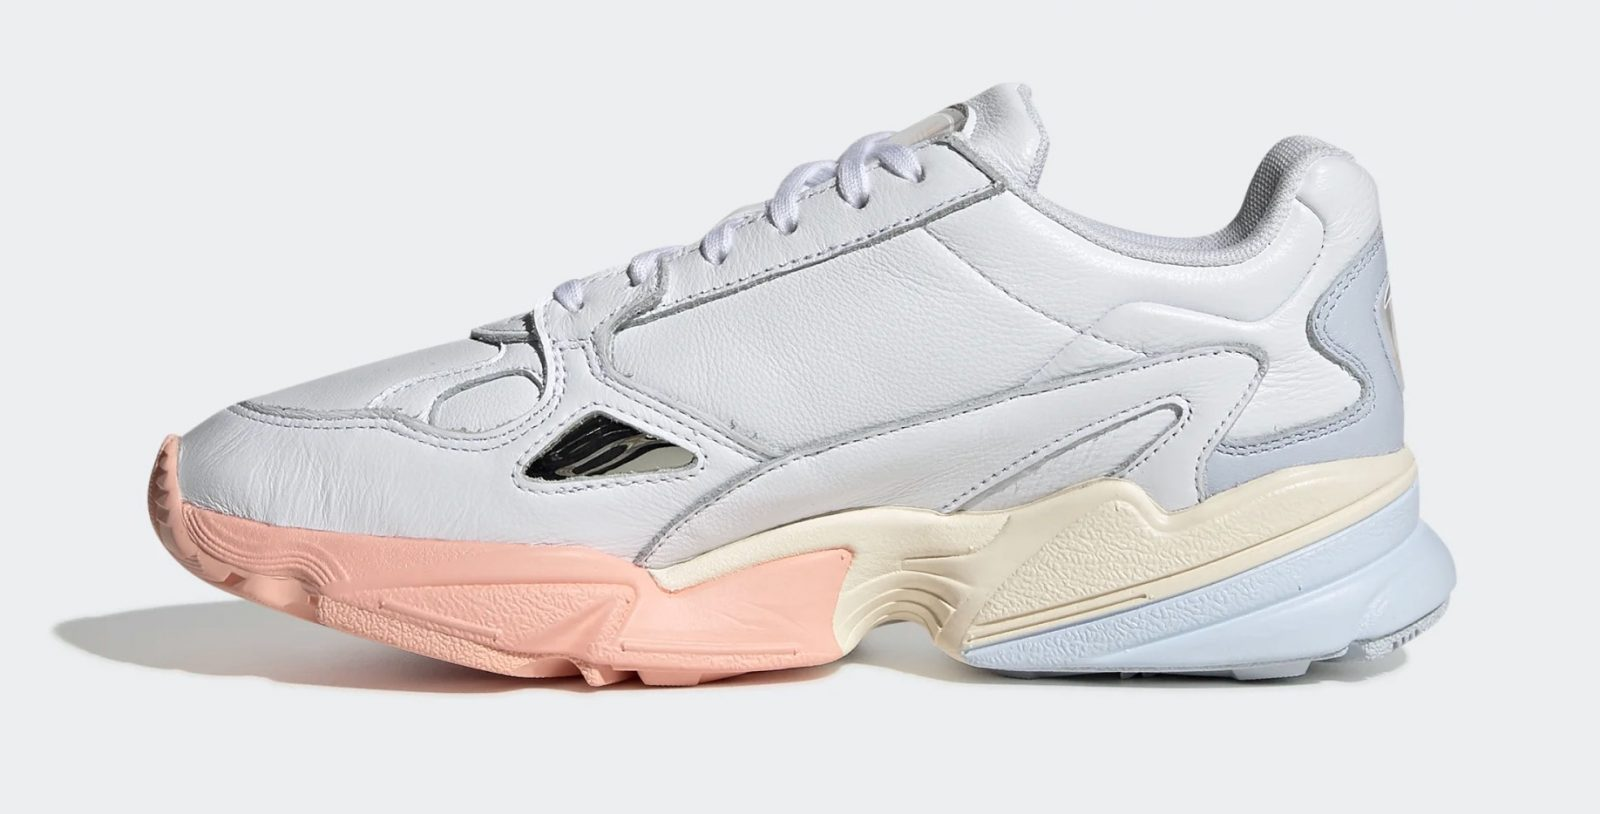 We Are Loving The Pastel Hues On This New adidas Falcon side2